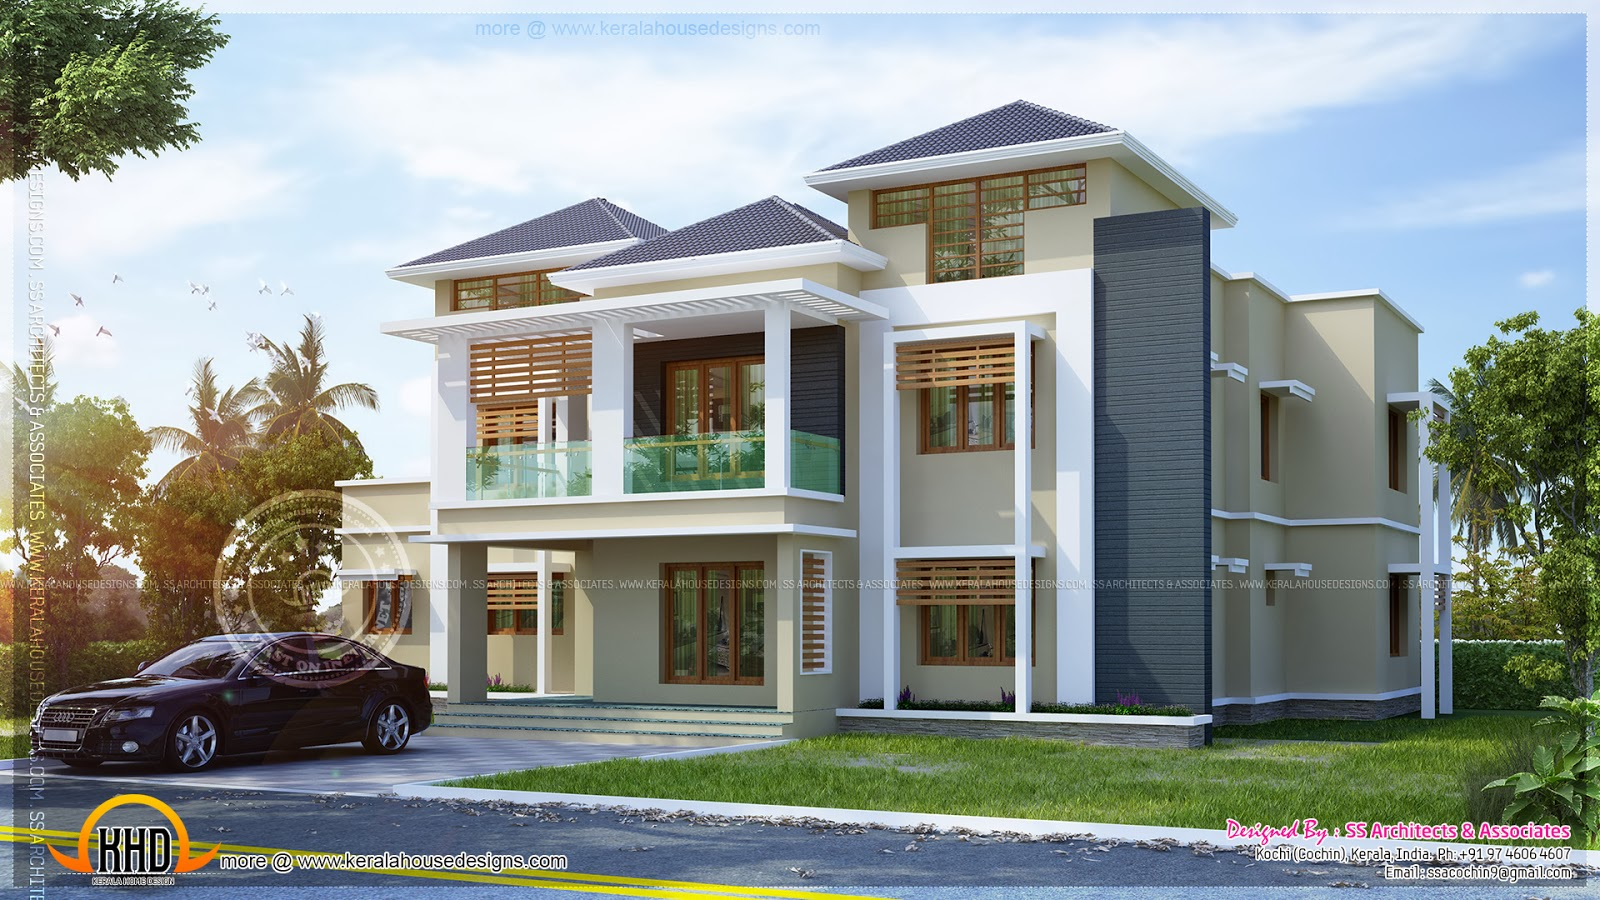 Awesome house plan kerala home design and floor plans for Awesome house floor plans